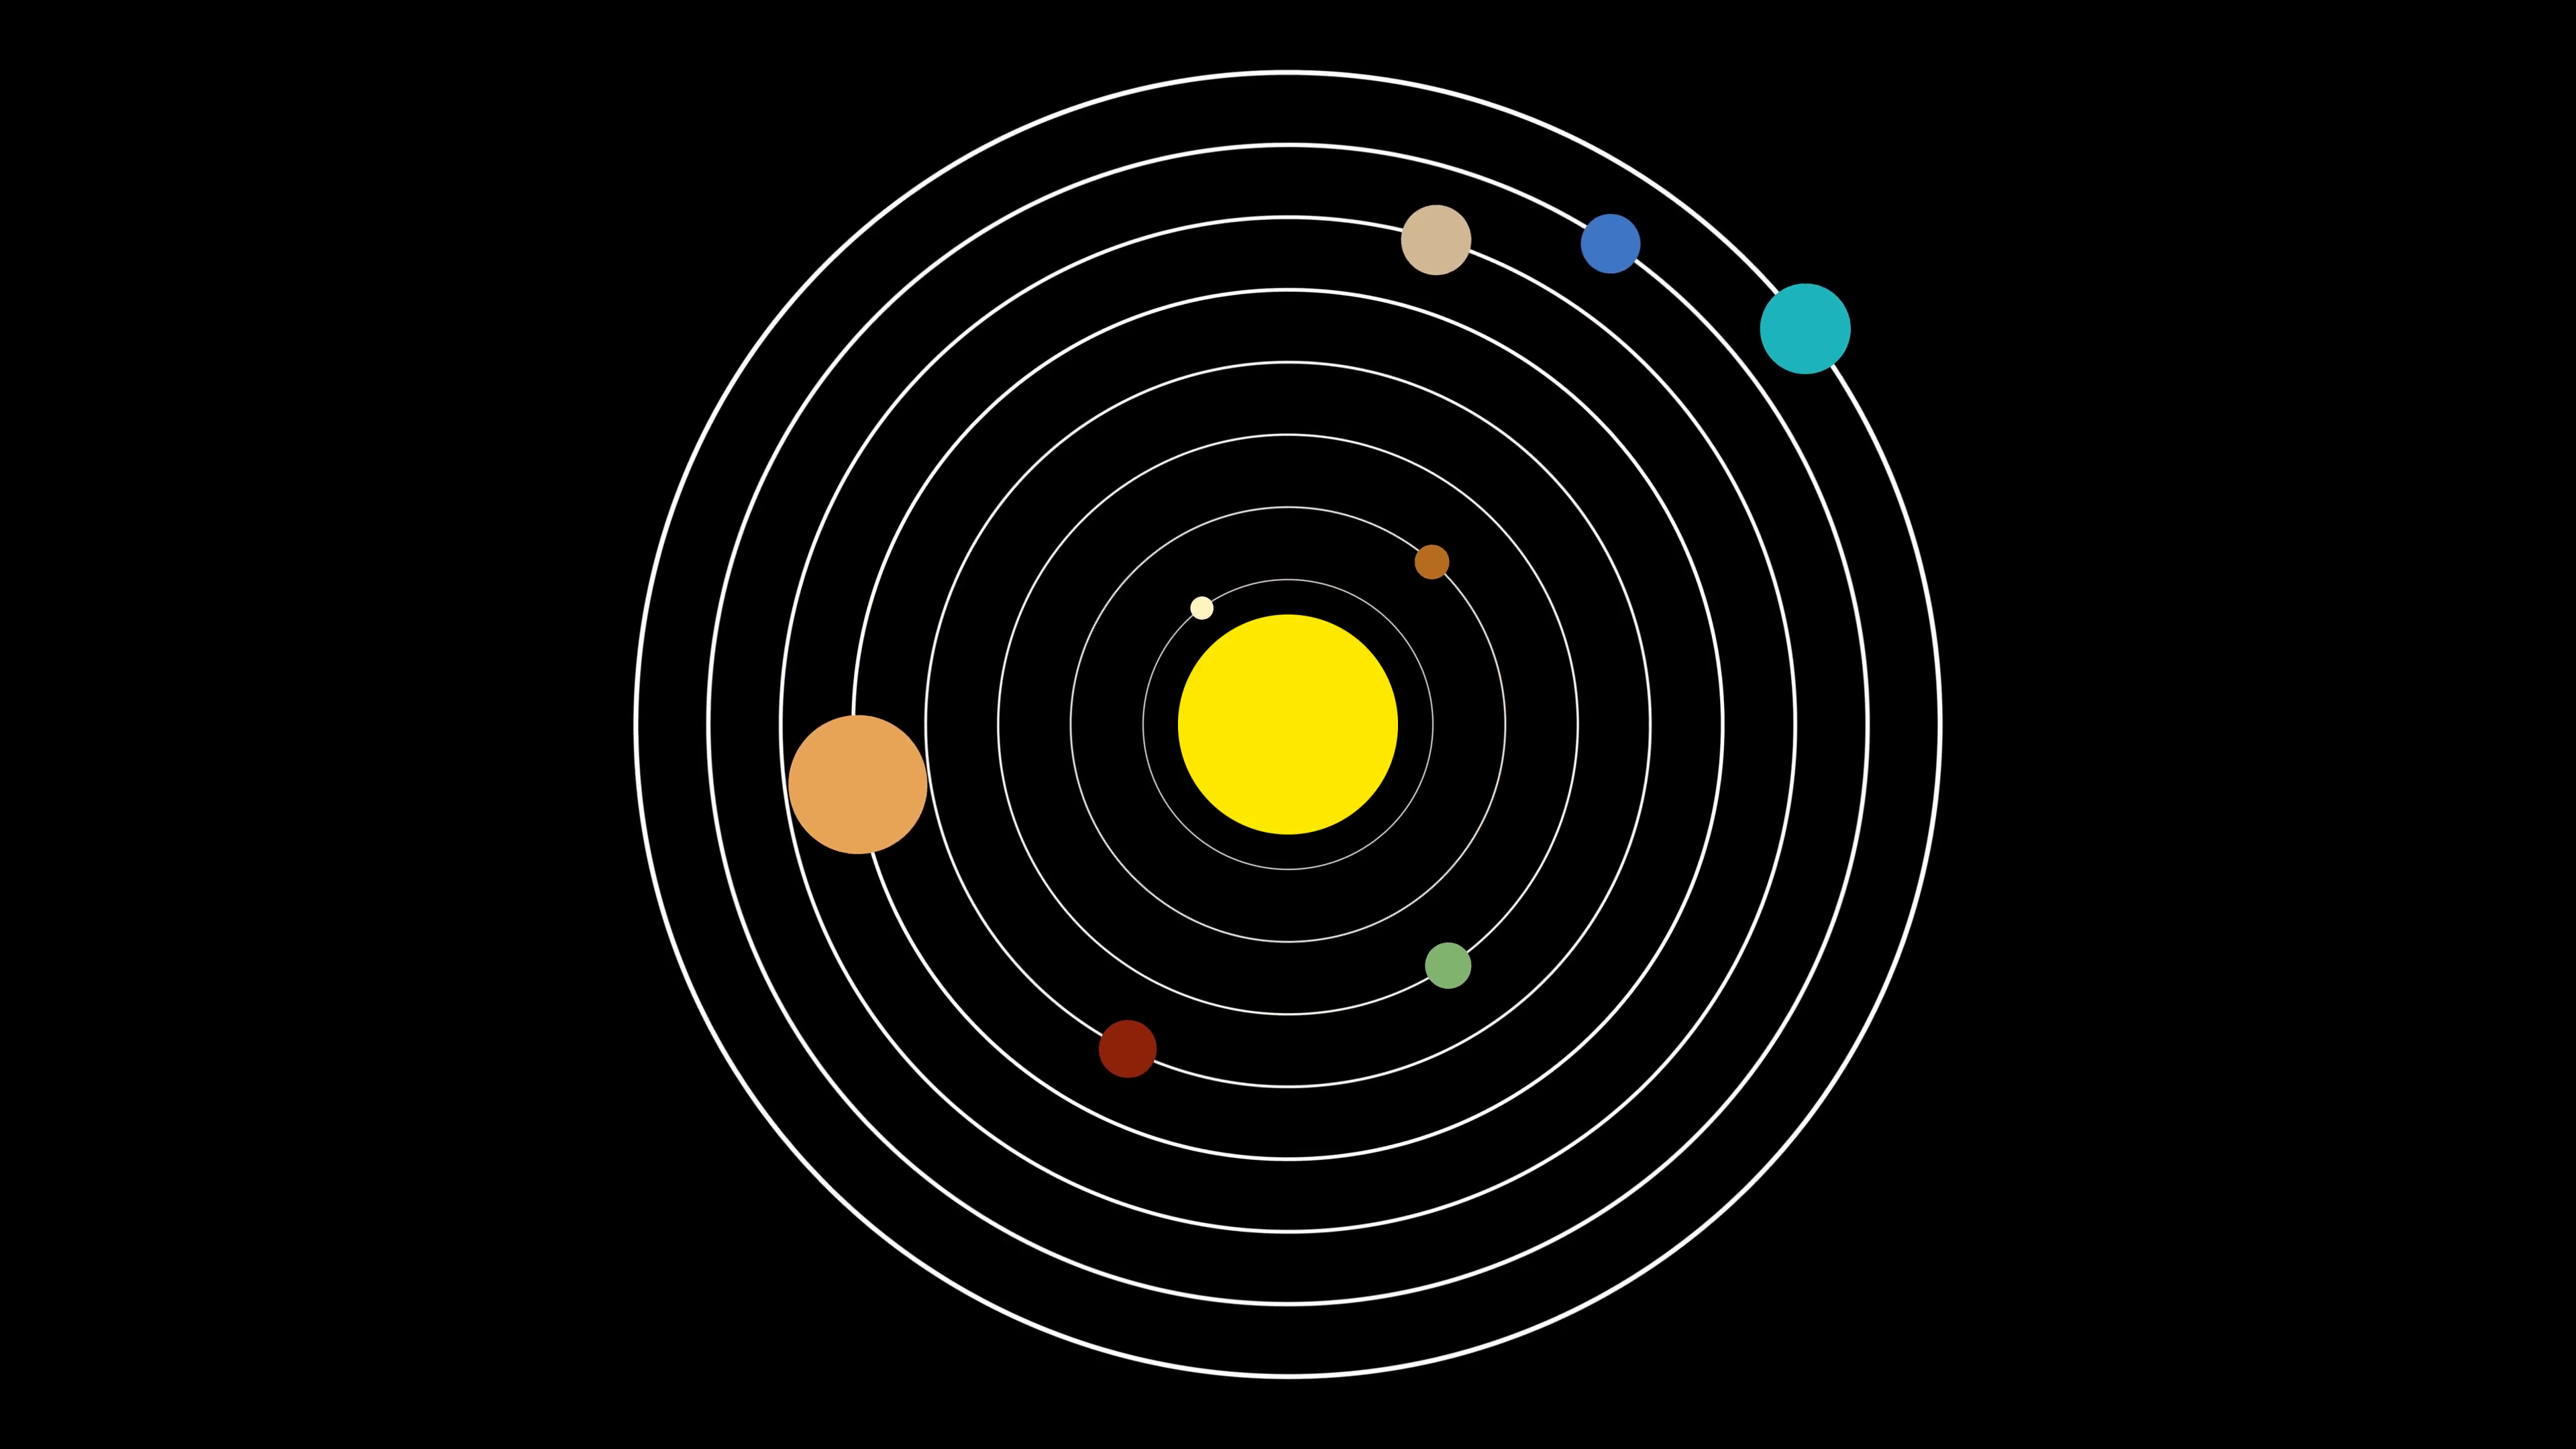 3840x2160 Simple Vector Illustration Style Of The Solar System With Planets